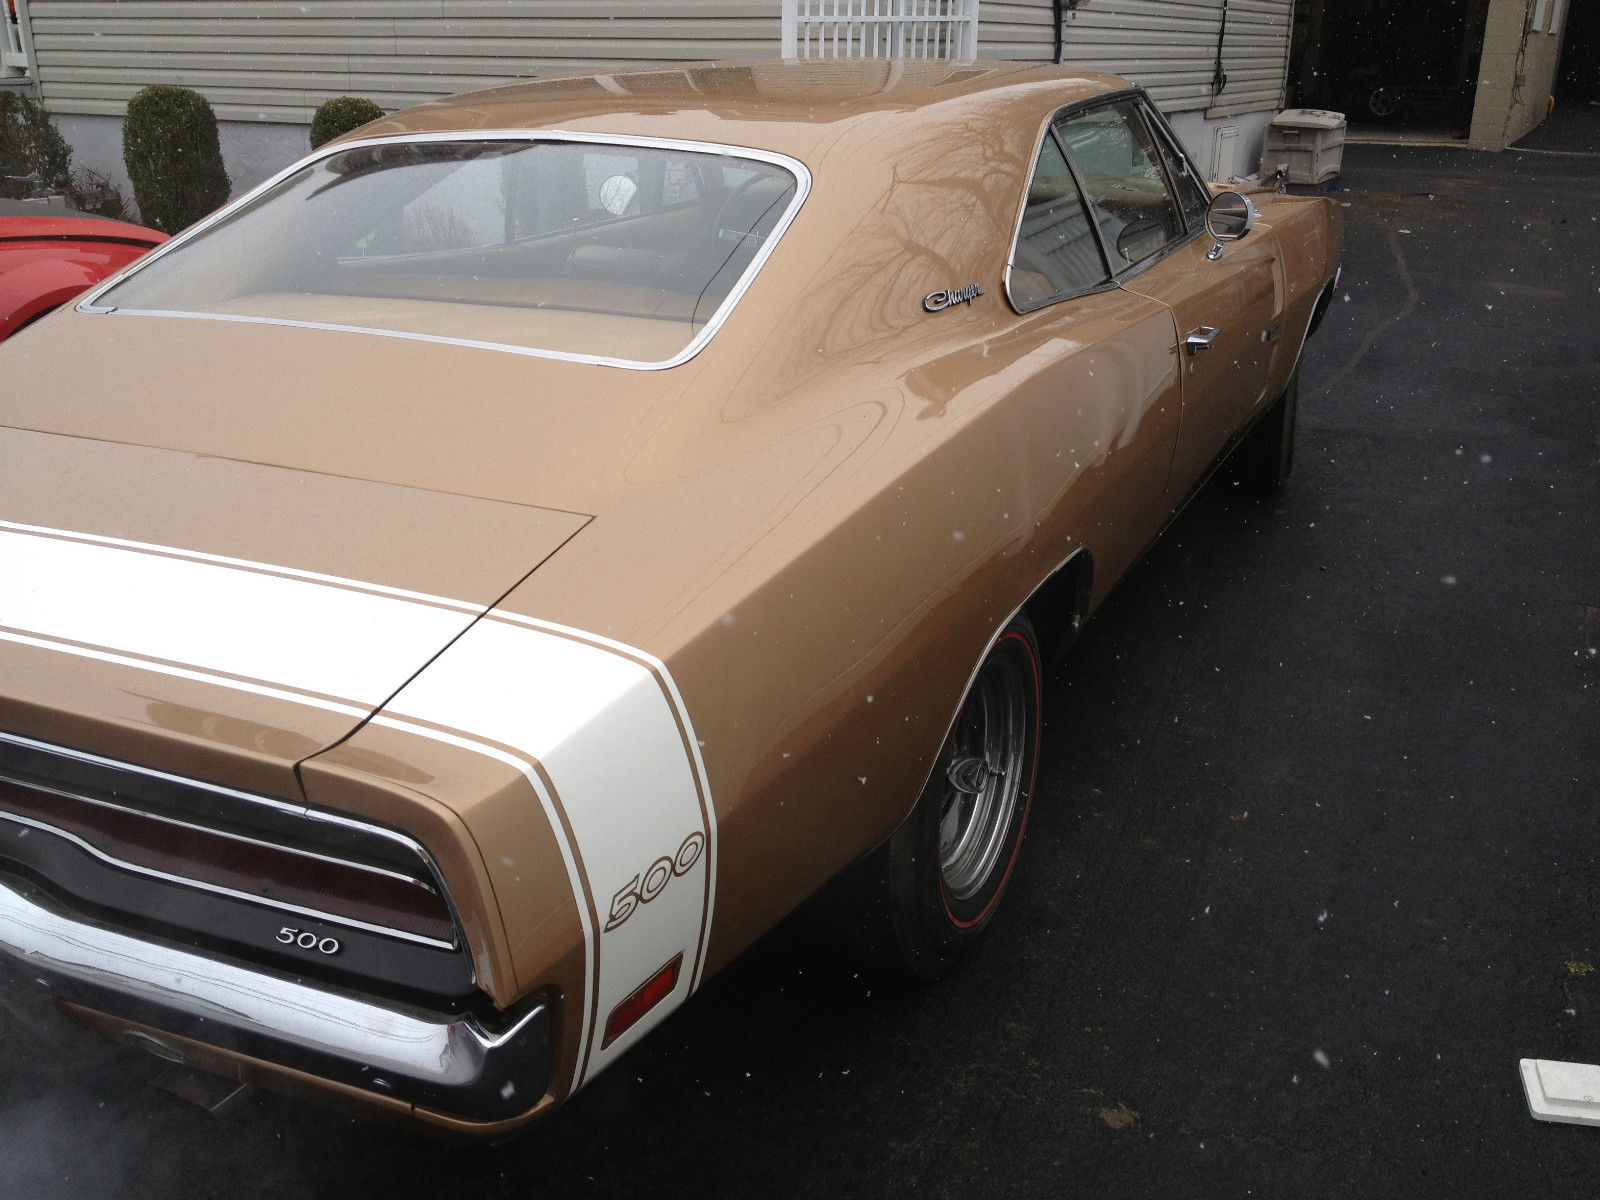 1968 Barracuda For Sale Craigslist | Autos Post